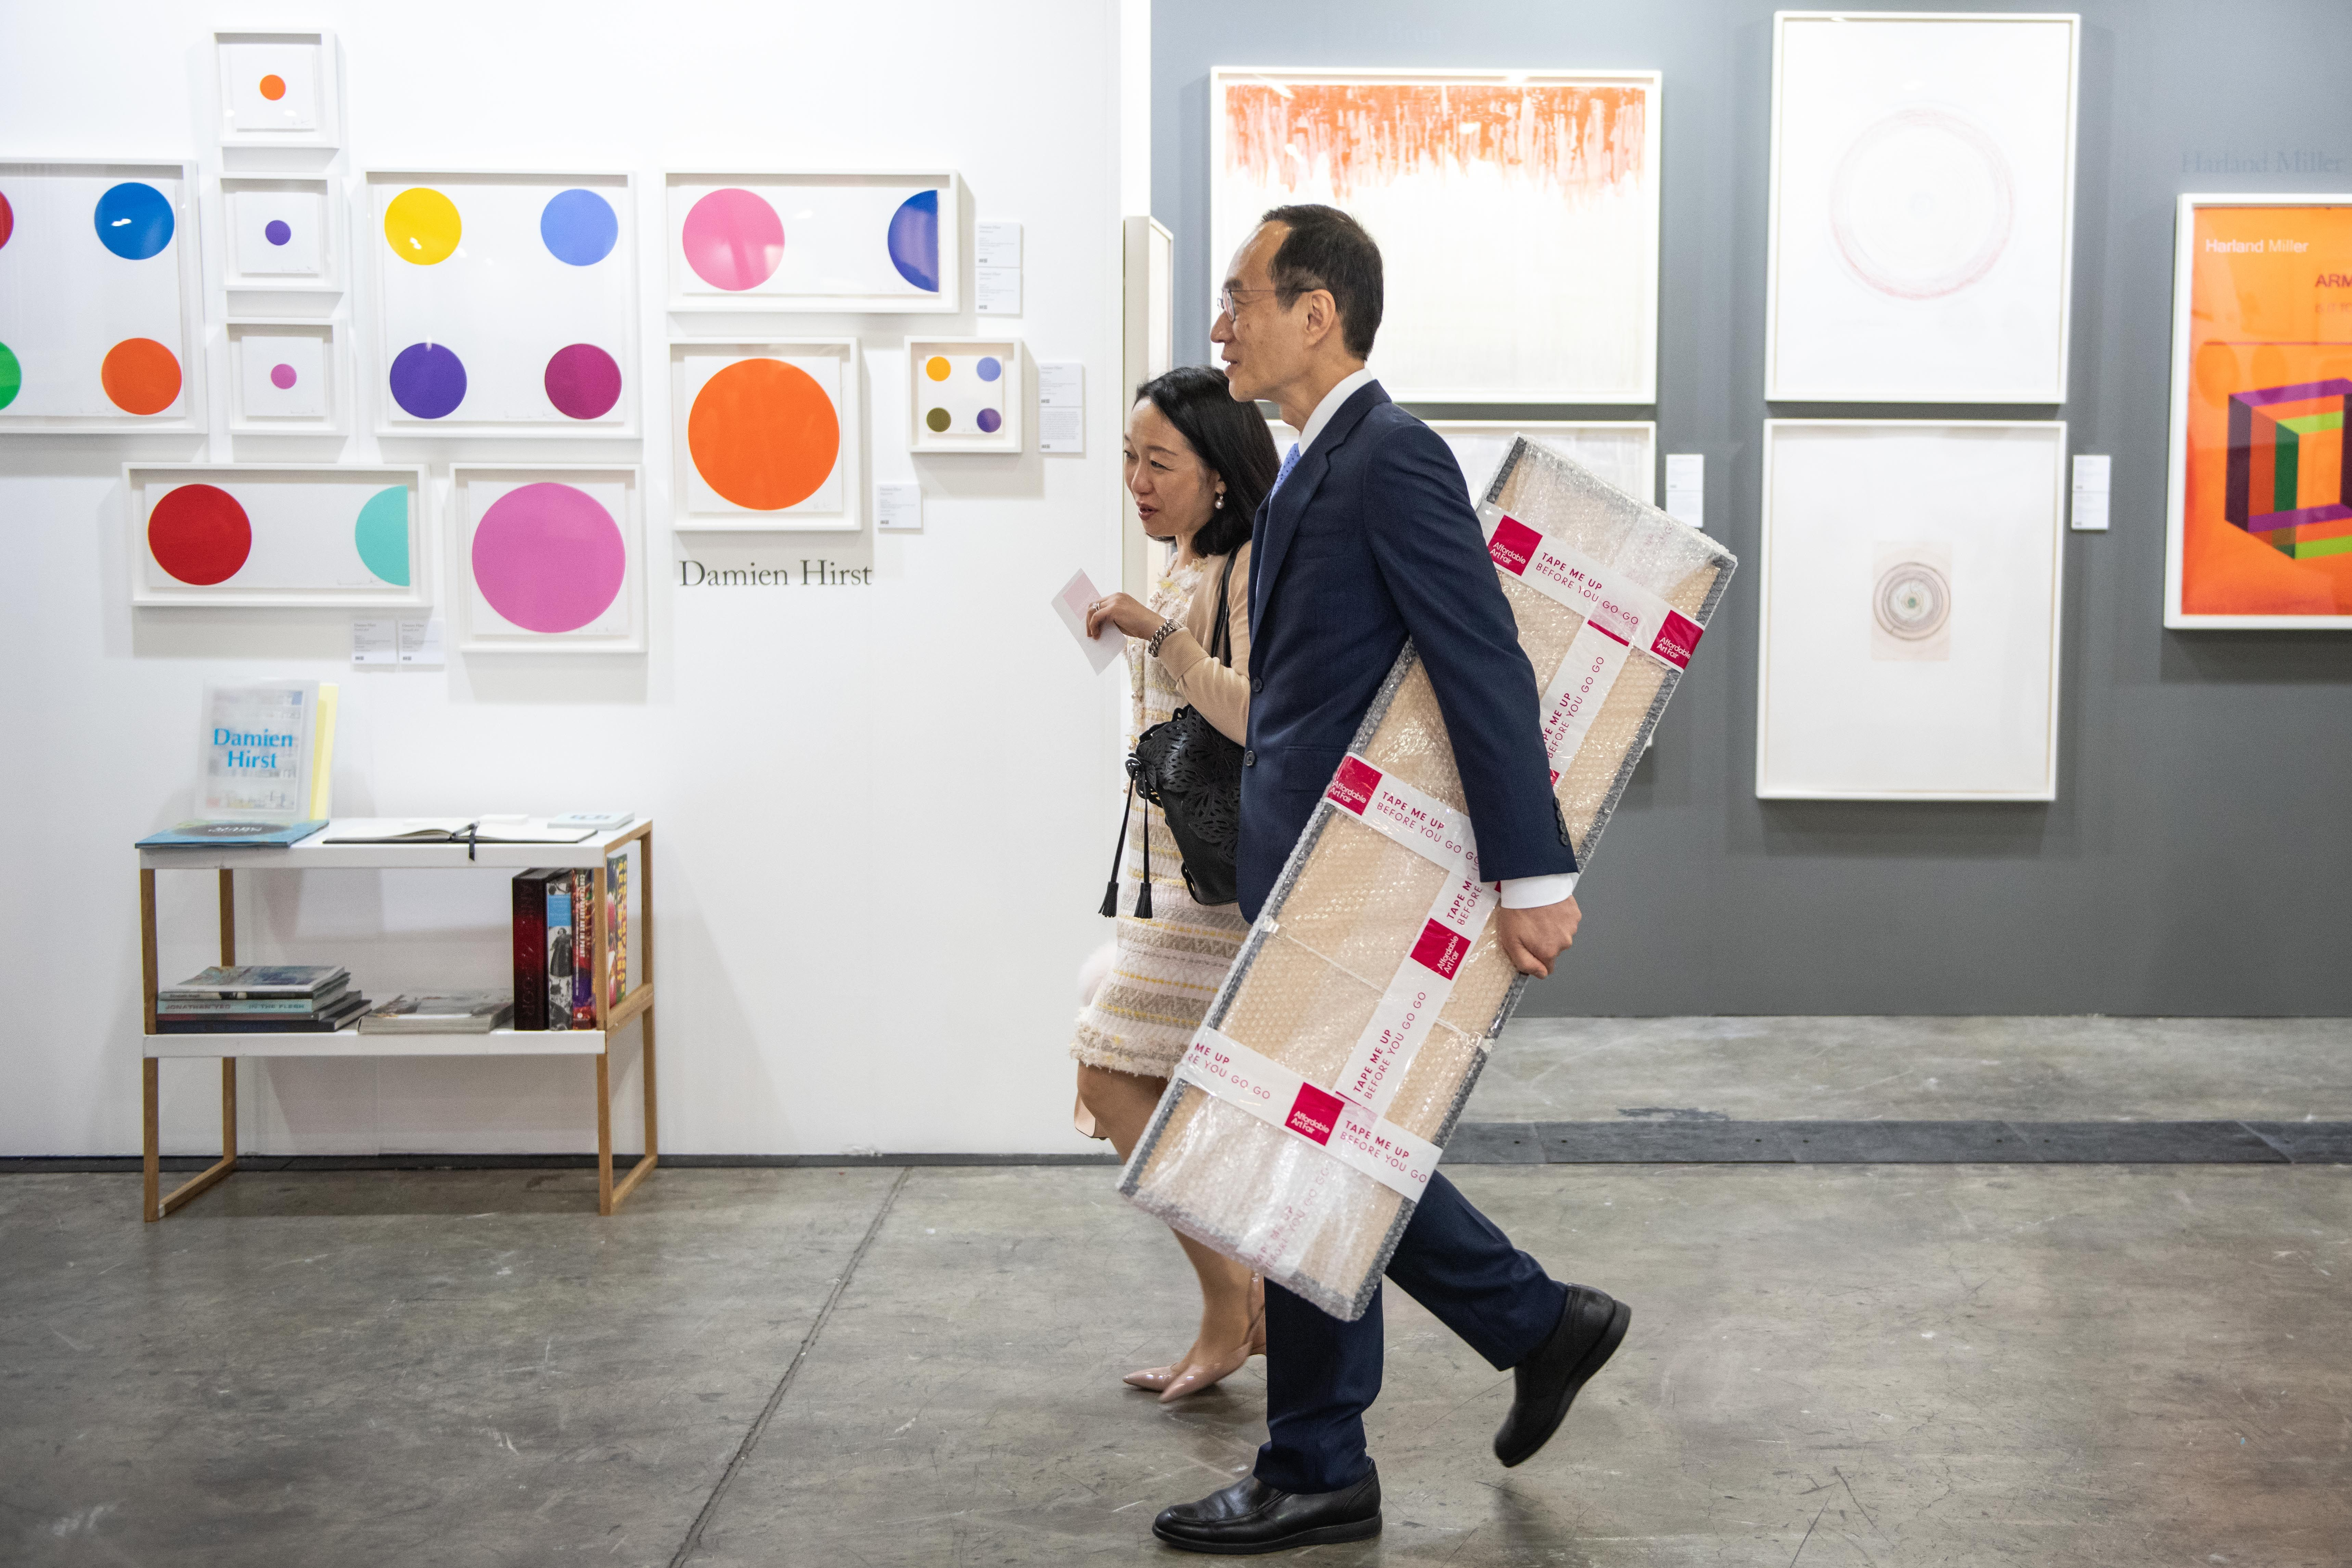 Hong Kong 2015 Aafhongkong Affordableartfair Affordable Art Fair Buy Art Online Hong Kong